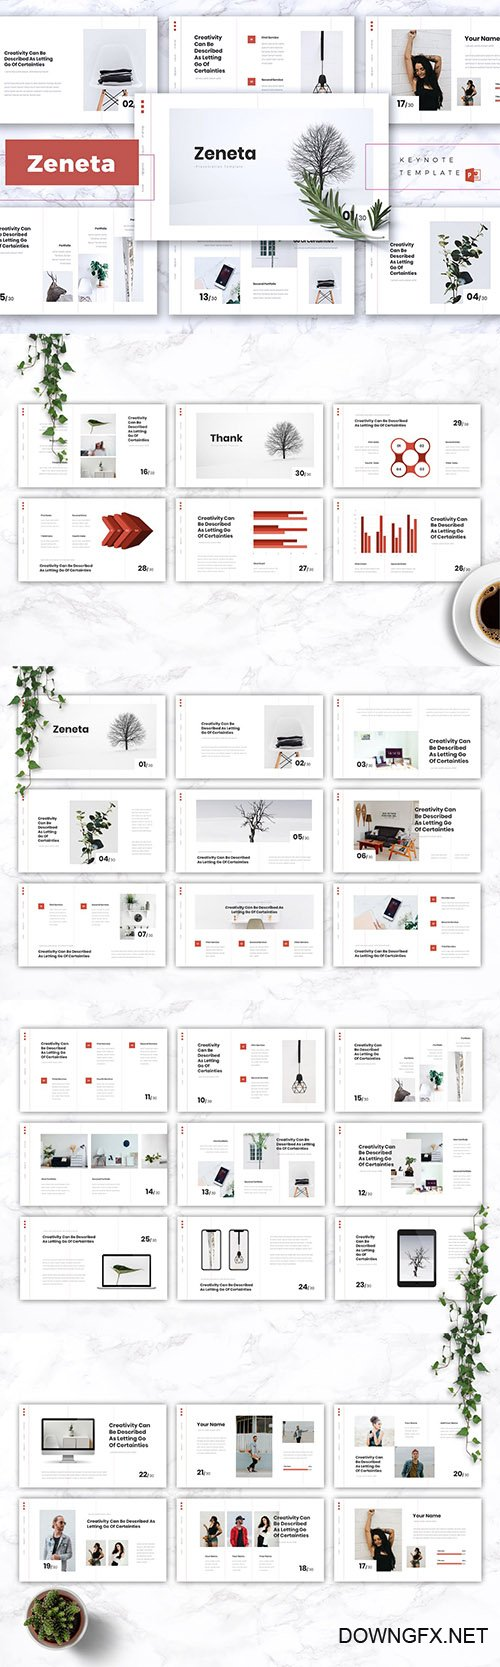 ZENETA - Creative Powerpoint, Keynote and Google Slides Templates